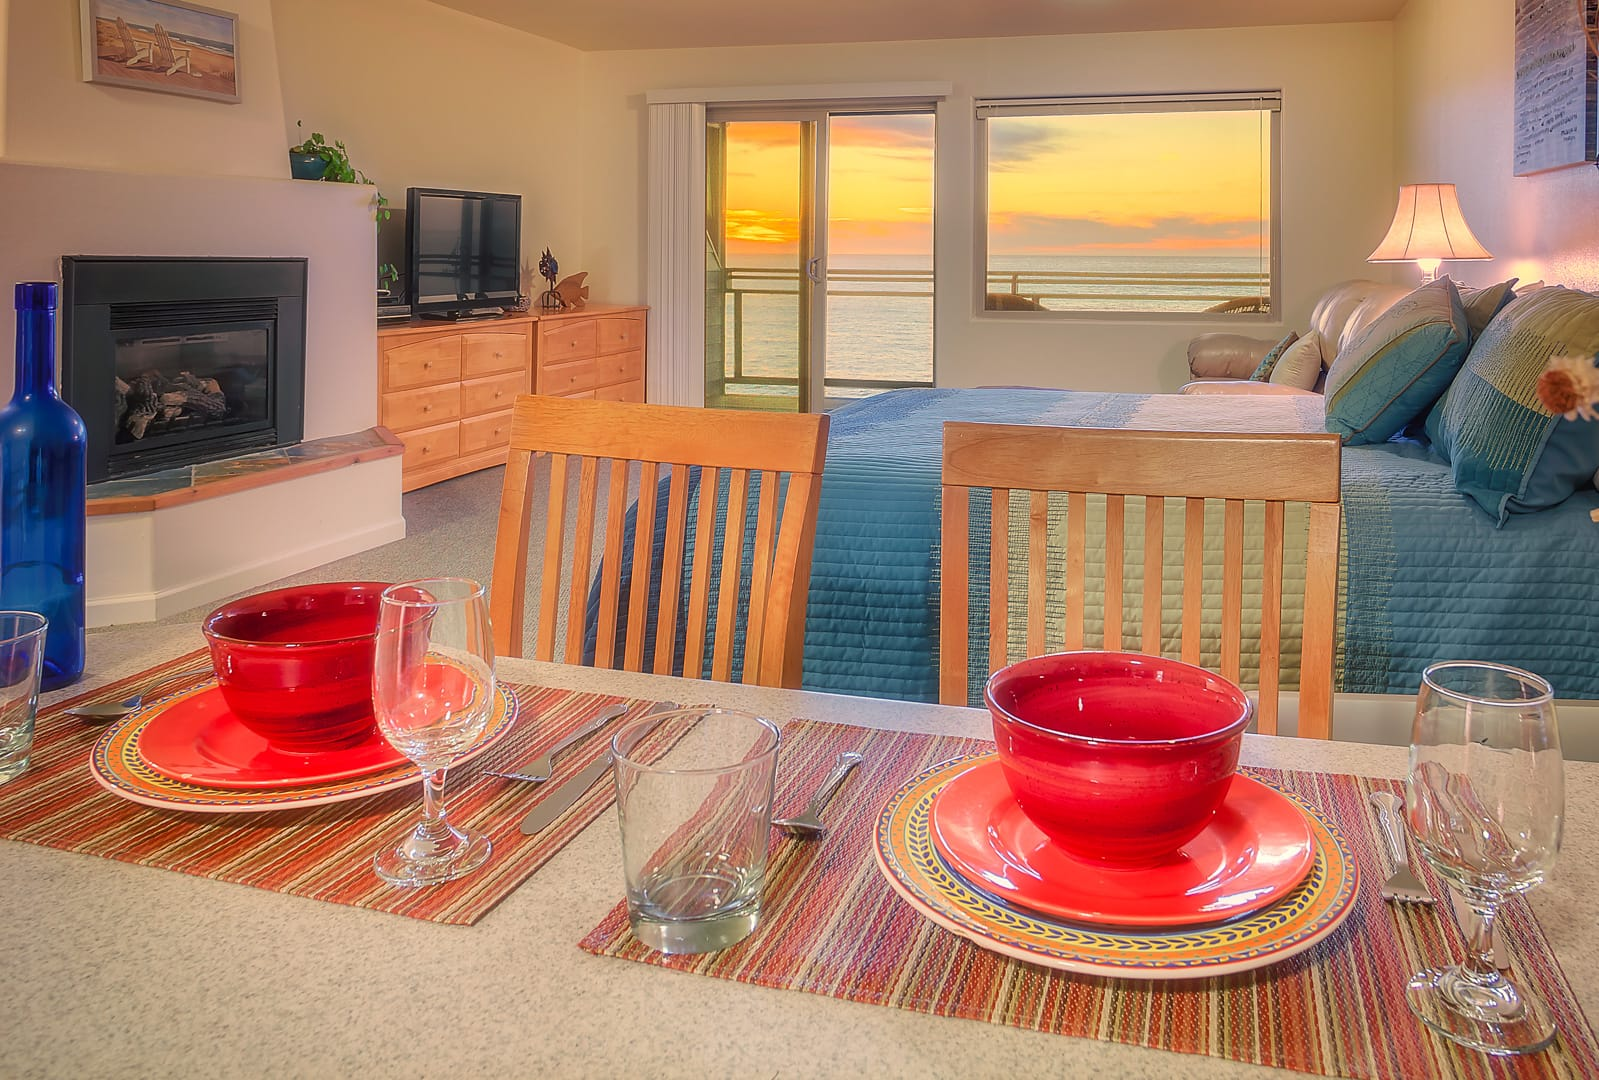 Meal setting on dining area of luxury Deluxe Kitchen Suite hotel room. King size bed, built-in fireplace with mantel, dresser drawers, flatscreen HDTV, and private balcony with panoramic view of Northern California Pacific Ocean sunset.